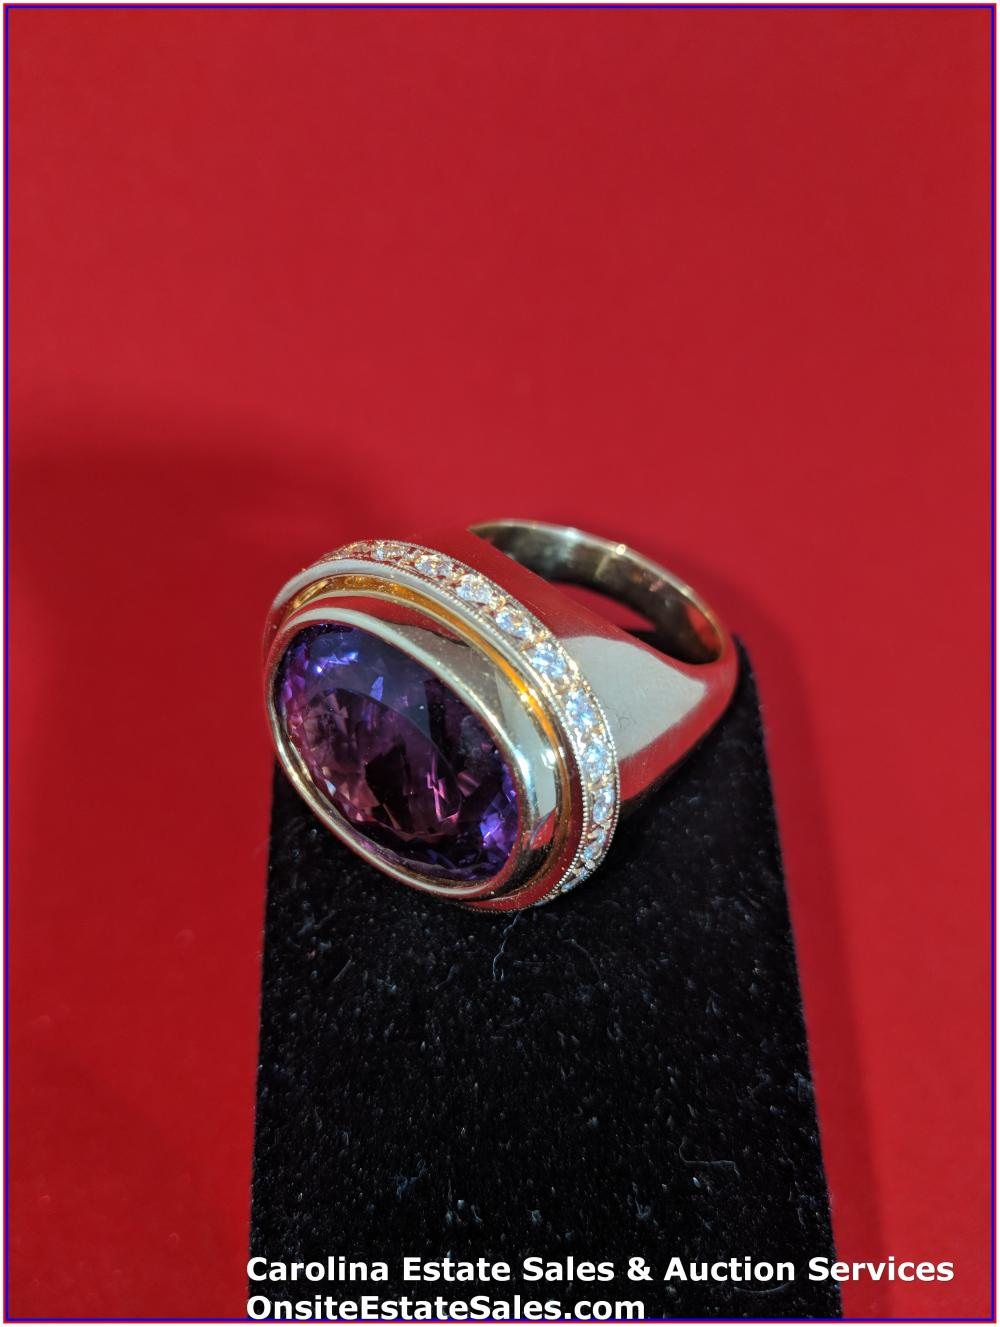 14K Gem Ring Heavy Gold 34 Grams Total Weight; 25 ct Amethyst surrounded by Diamonds